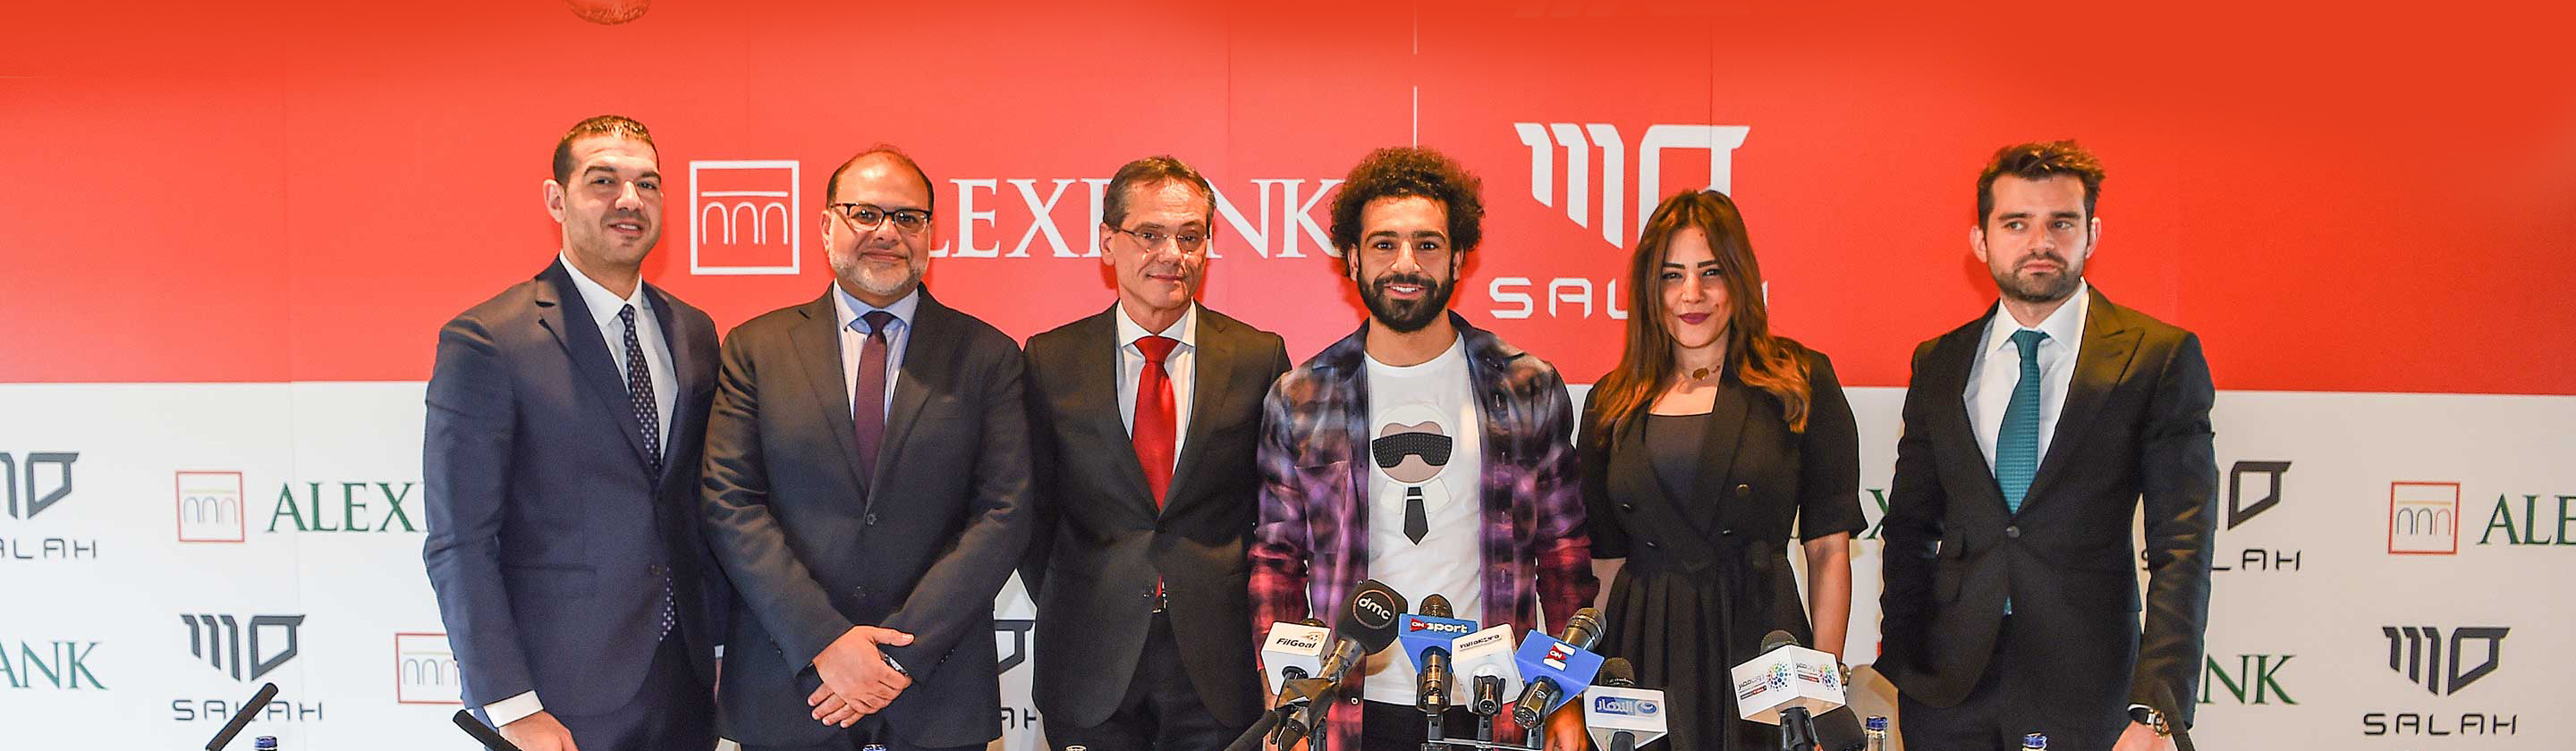 ALEXBANK Partners with global Egyptian Football Icon